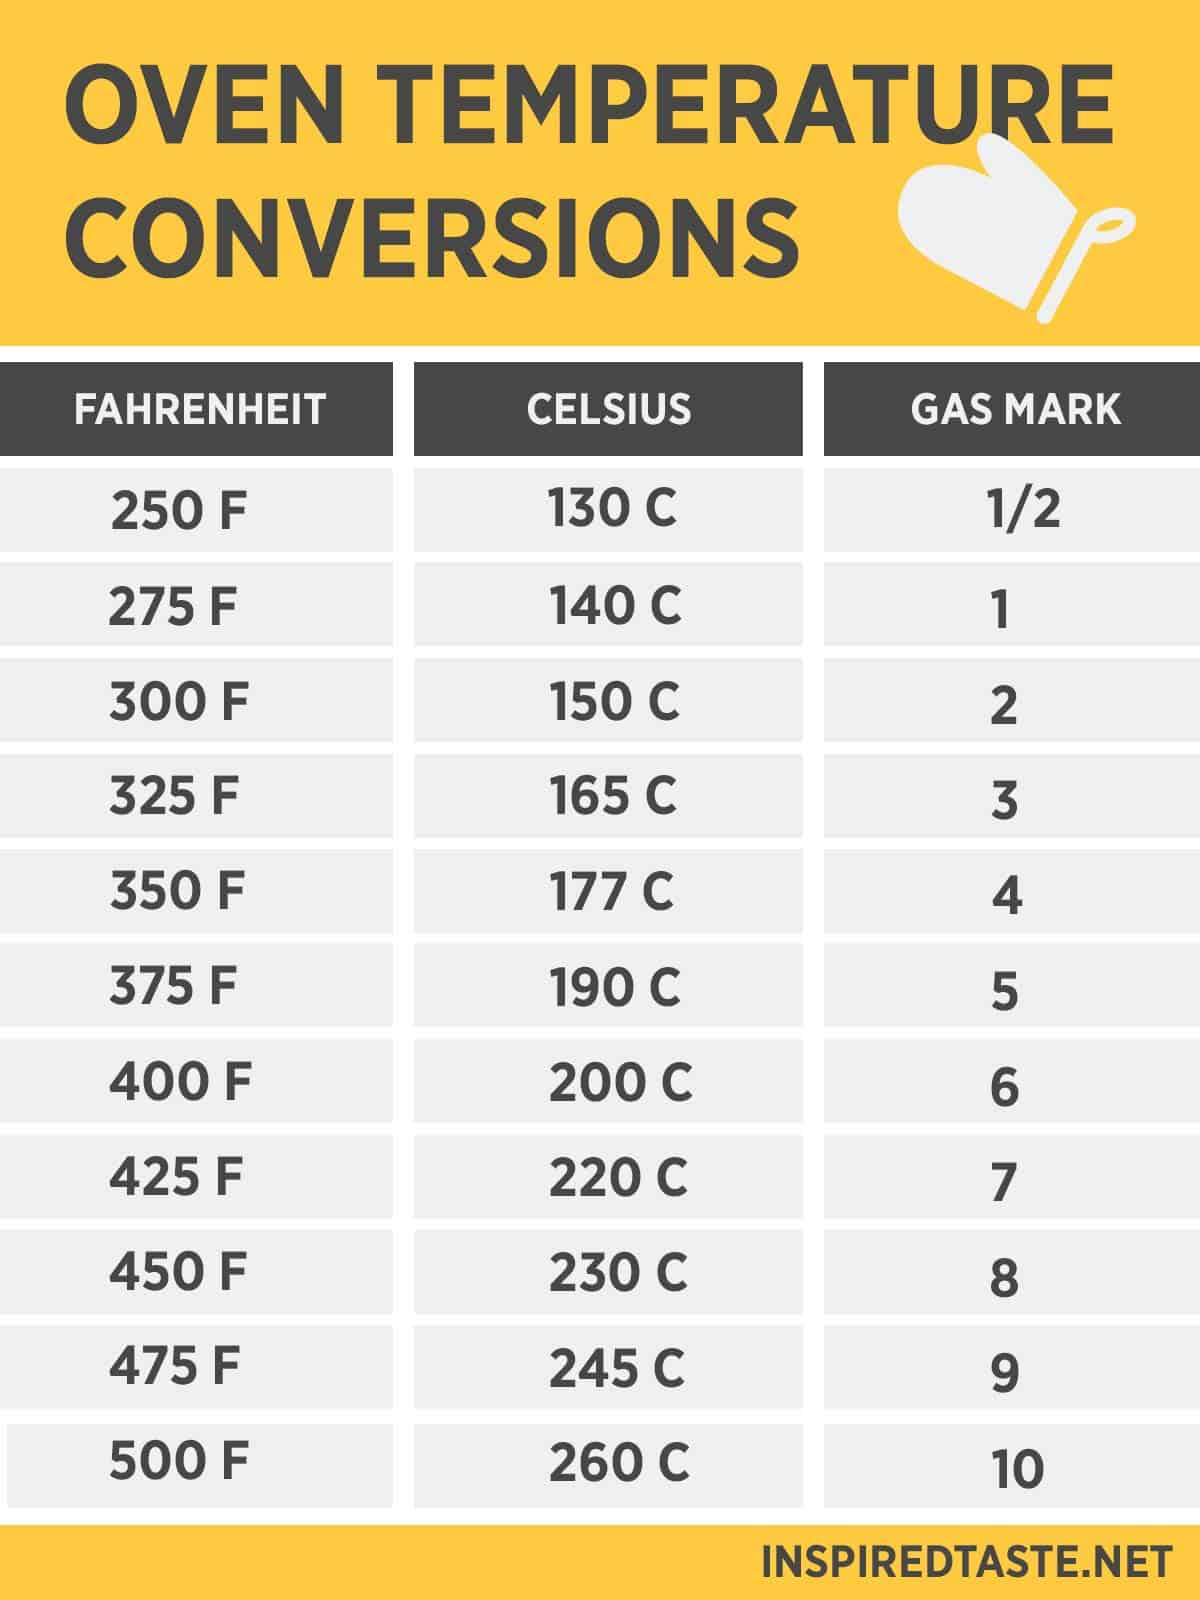 Oven temperature conversion fahrenheit celsius oven temperature conversion chart fahrenheit celsius and gas mark nvjuhfo Images